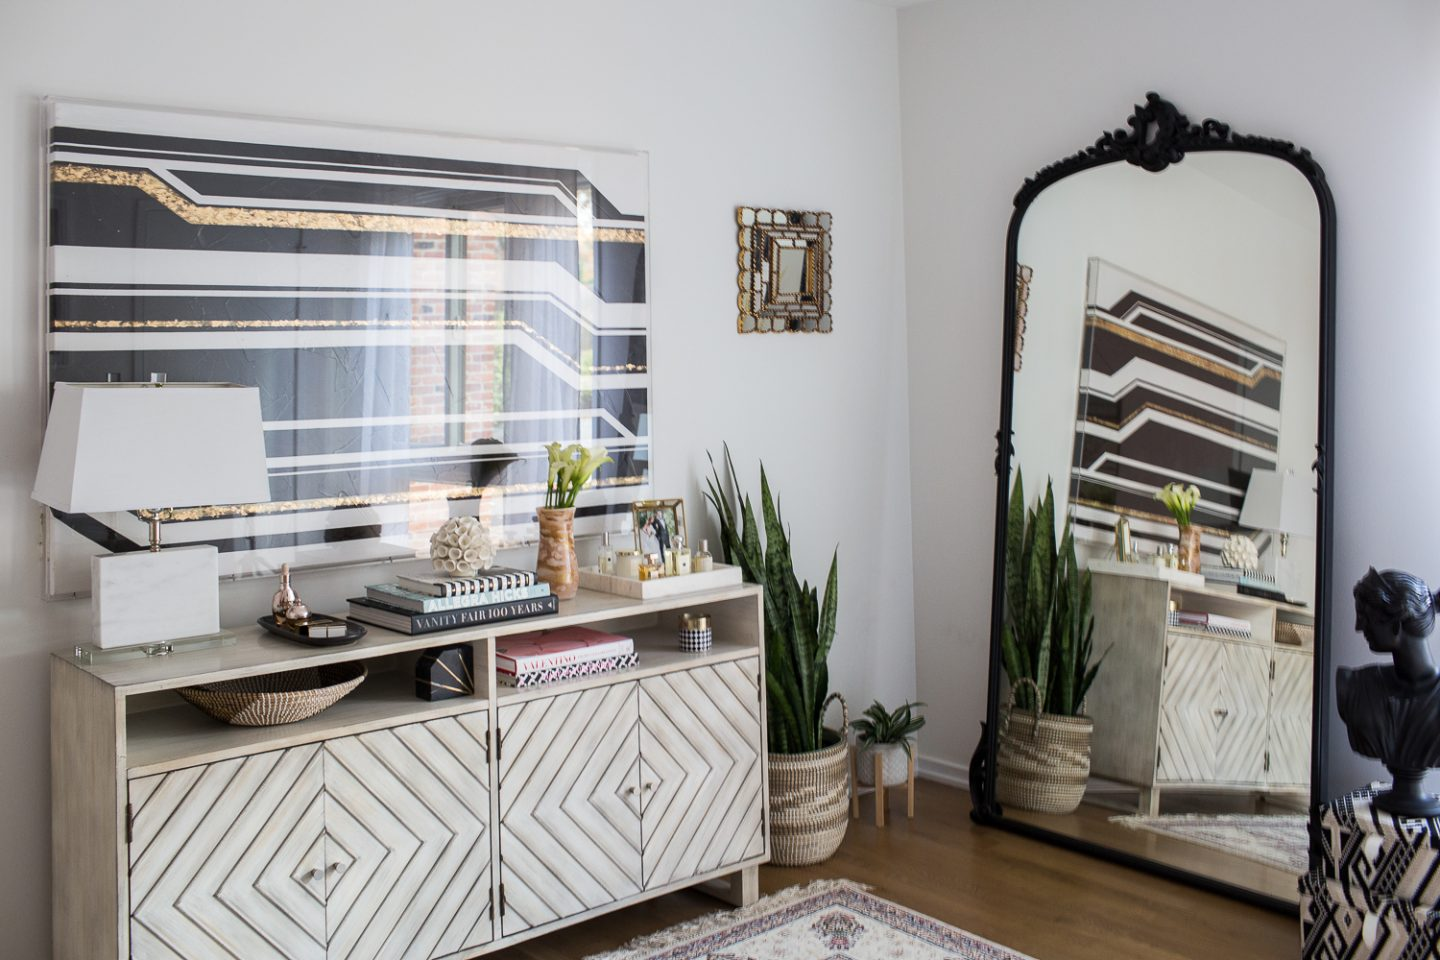 HomeGoods | Top 10 must-haves and tips on how to refresh your space